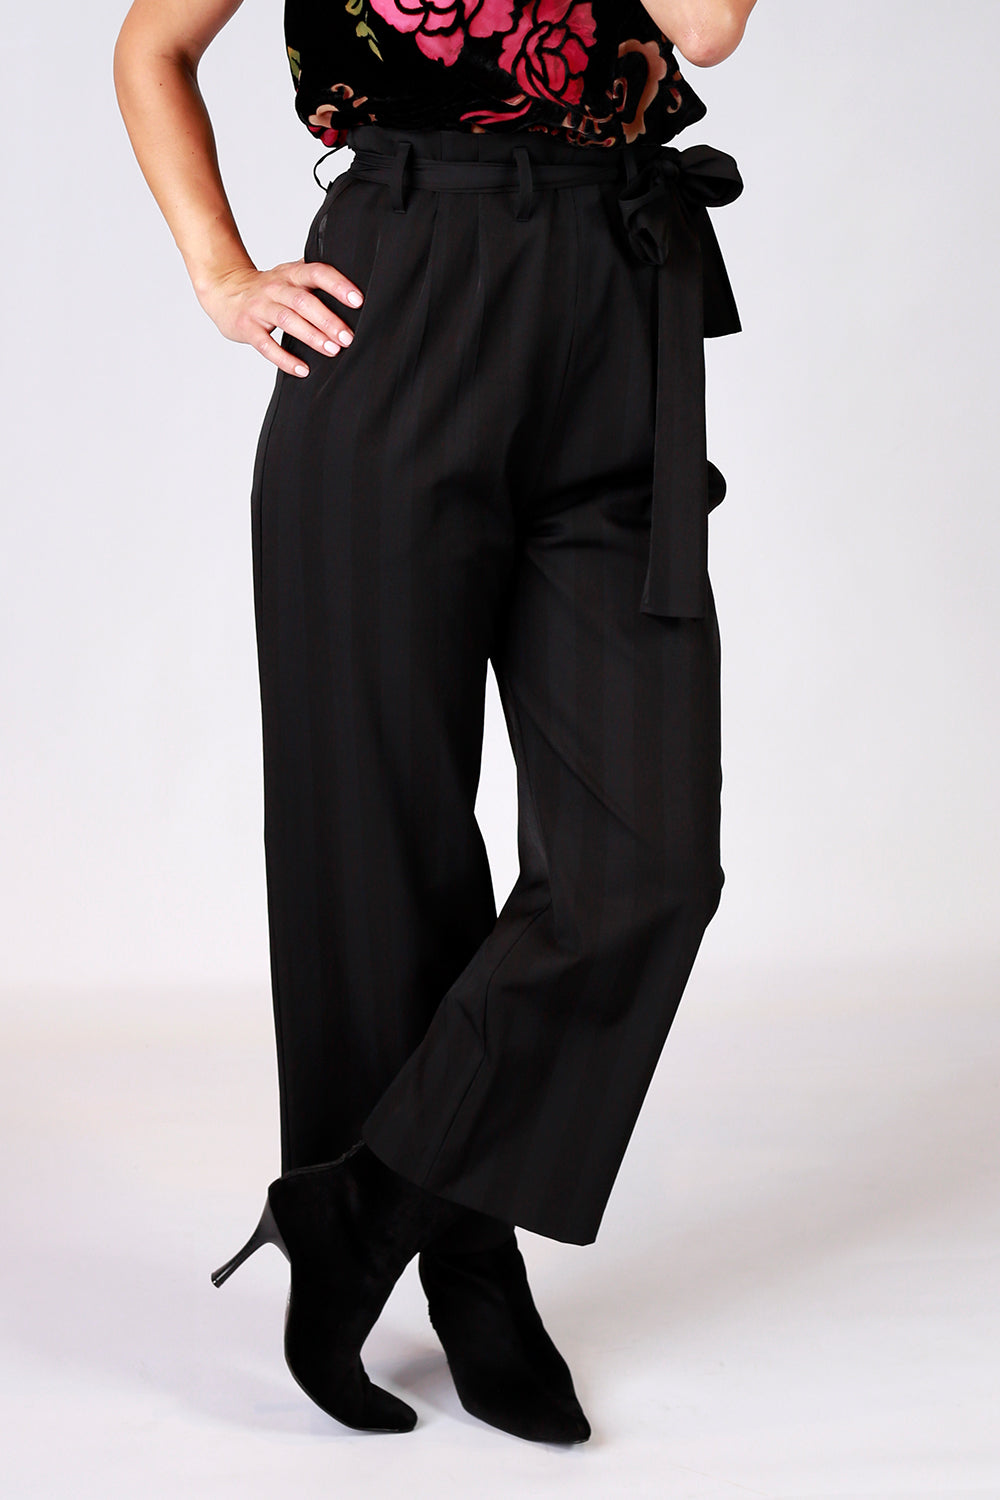 Best Company Pants | Gypsy Fare AW20 | Annah Stretton | Annah Stretton Fashion | Designer Fashion | Culotte Pants | Wide Leg Pants | Black Pants | Annah Stretton NZ | Designer Fashion NZ